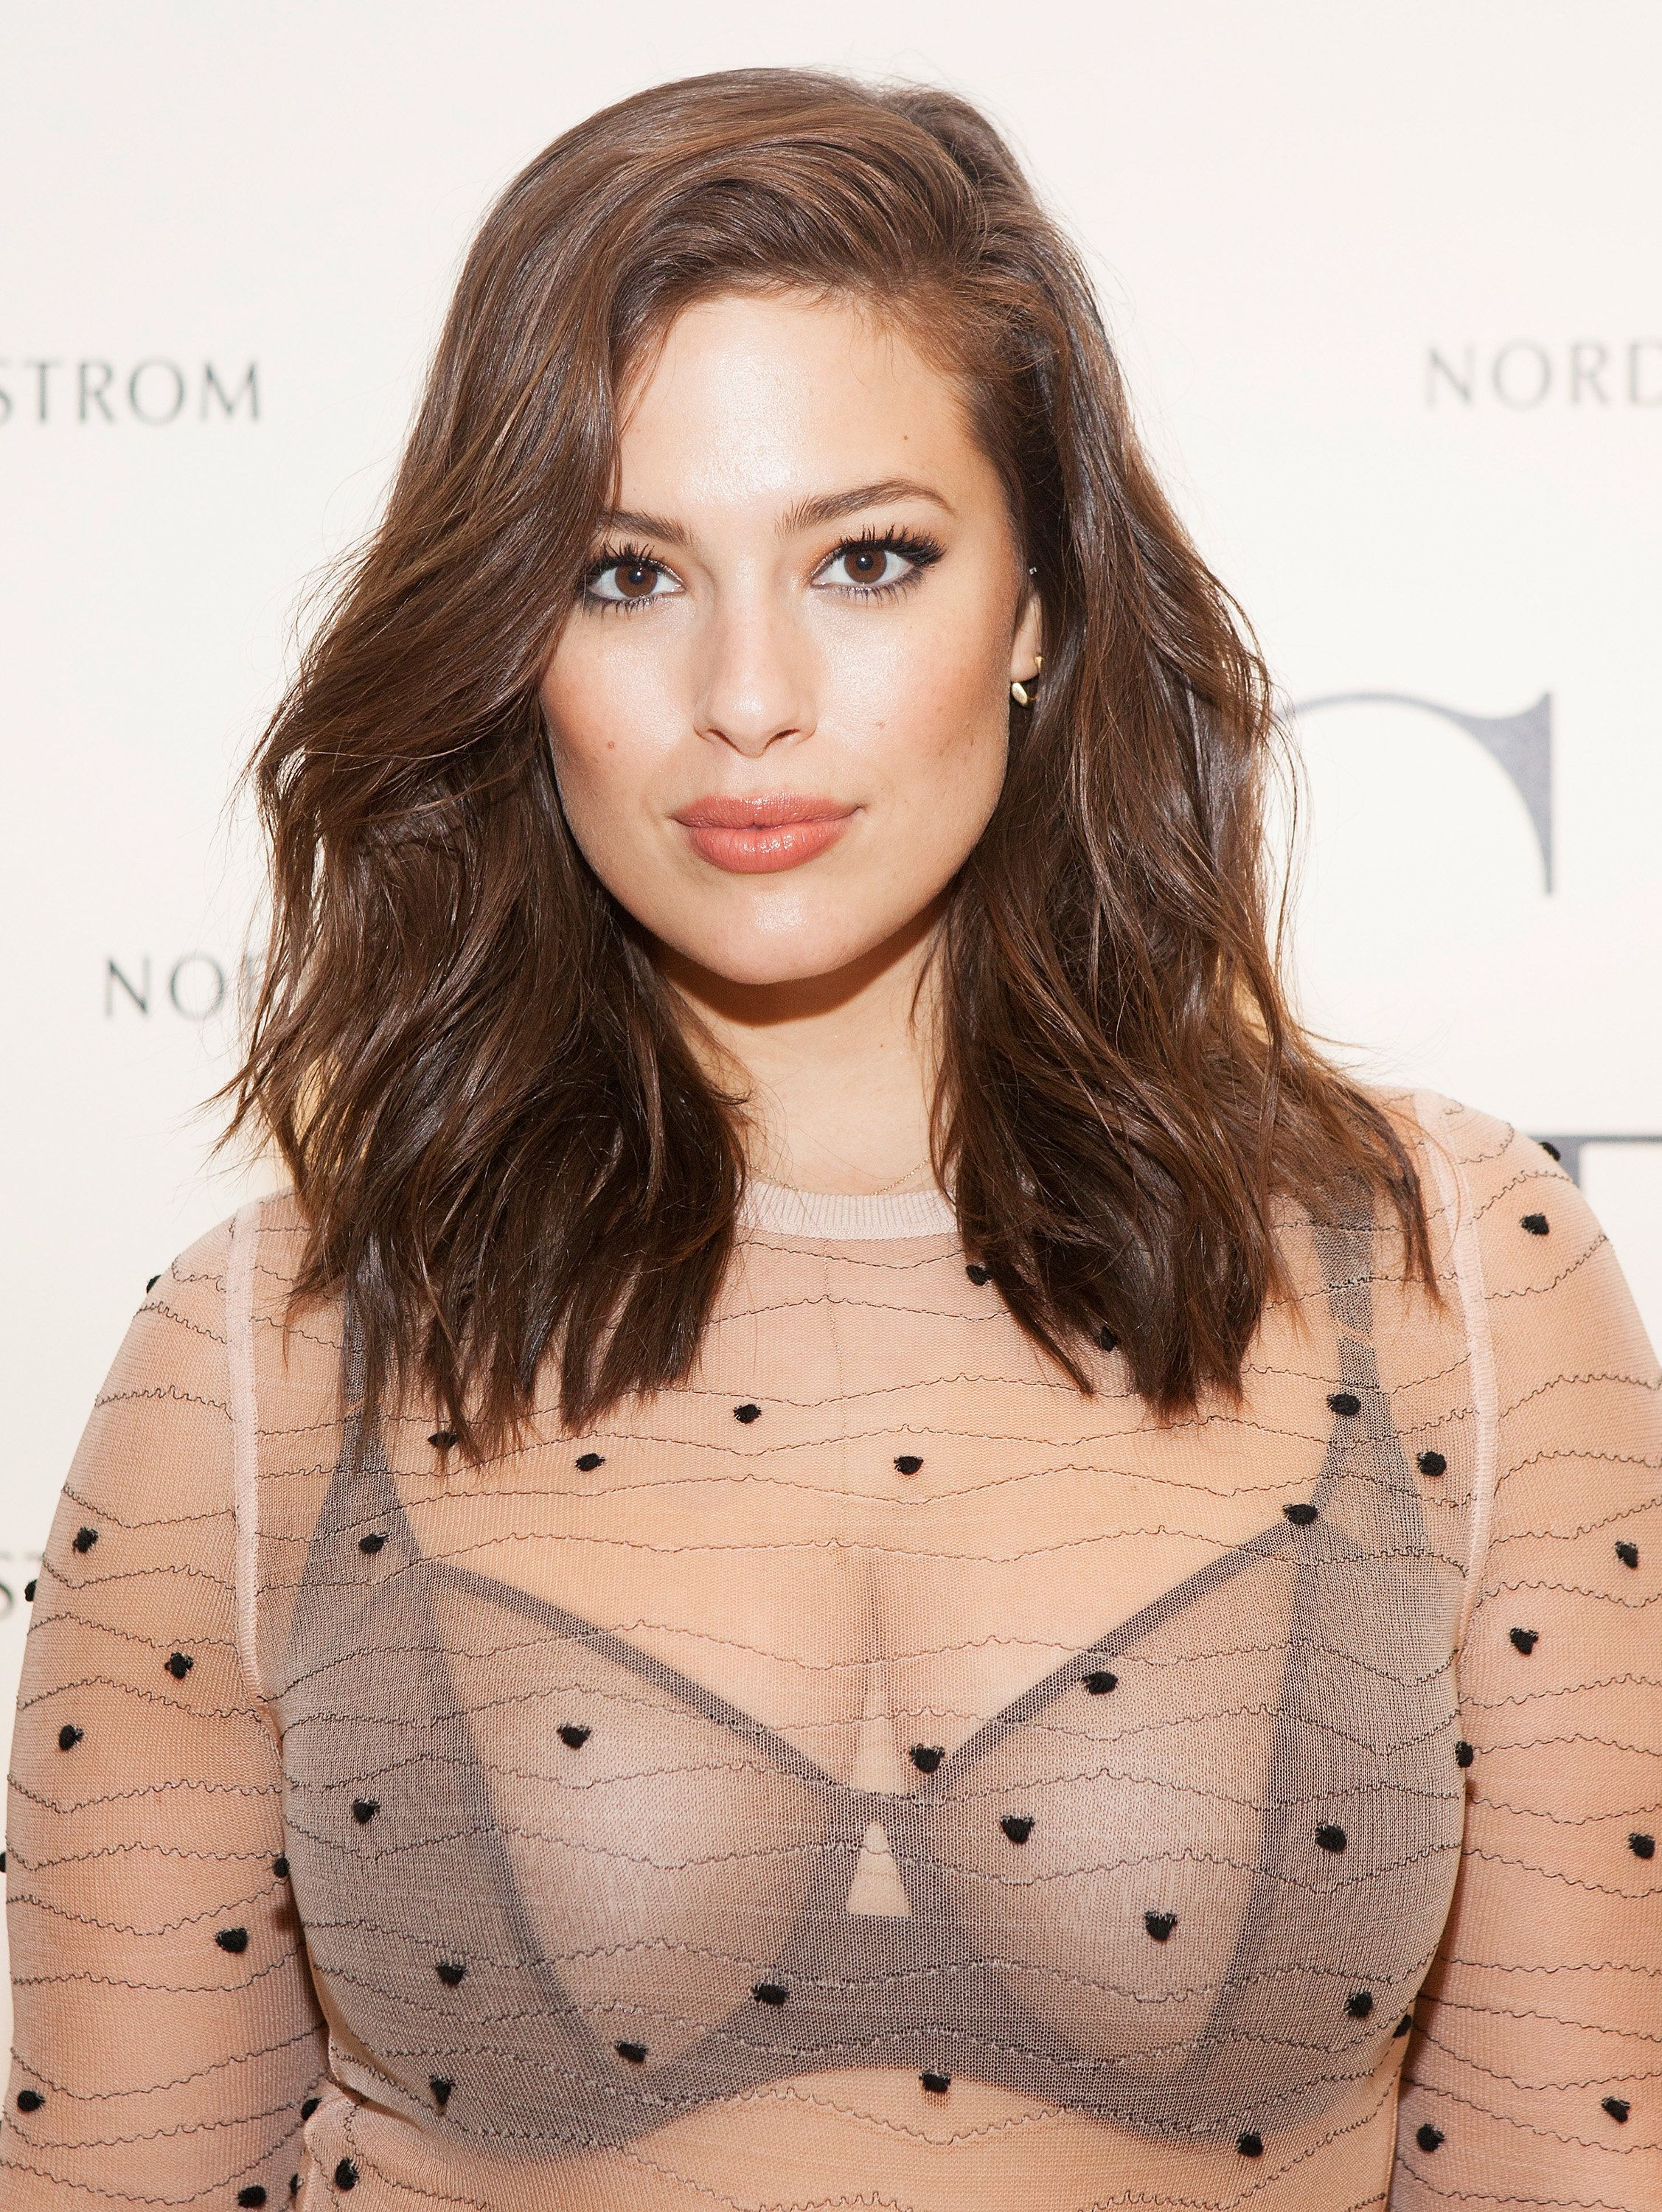 Ashley Graham's Cellulite Photo Is Too Sexy And Too